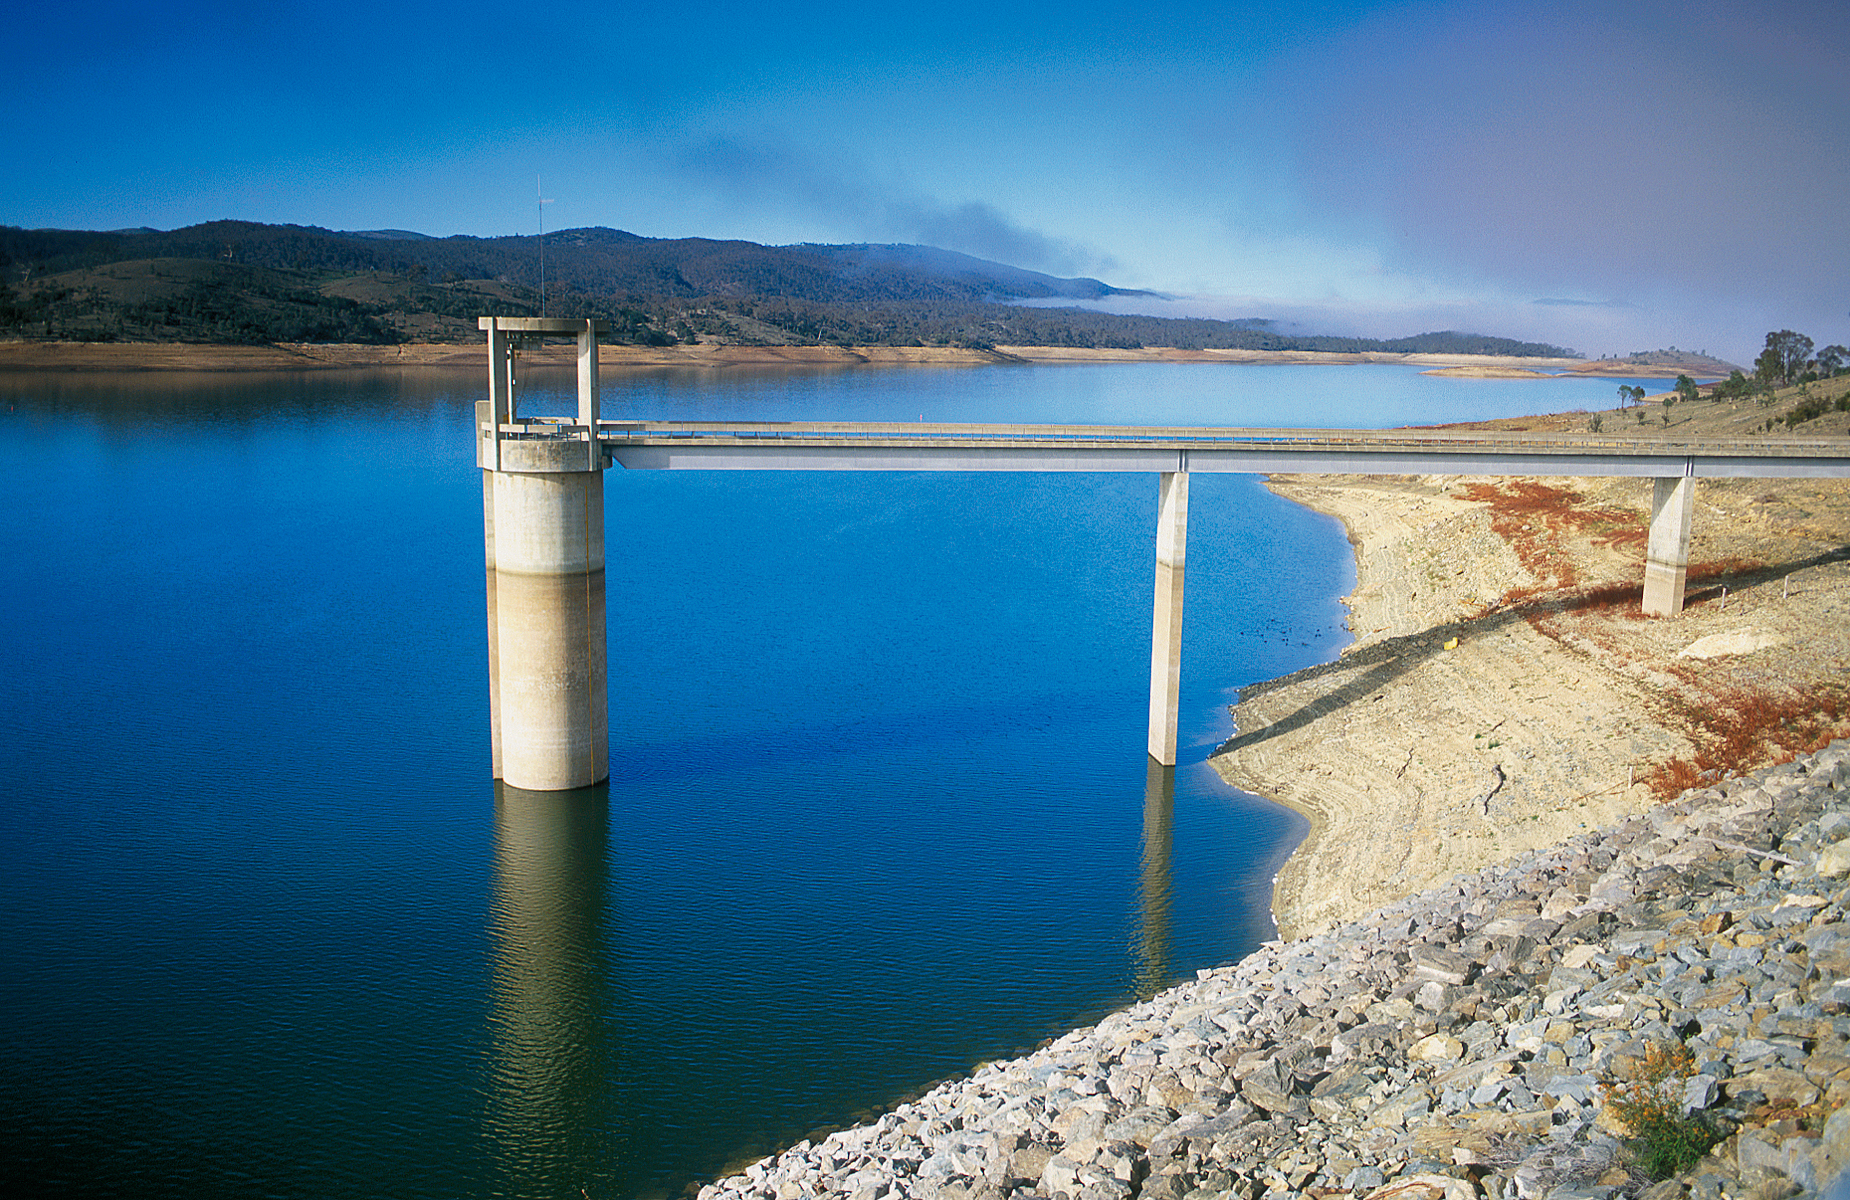 Googon Reservoir with water infrastructure bridge crossing to the middle